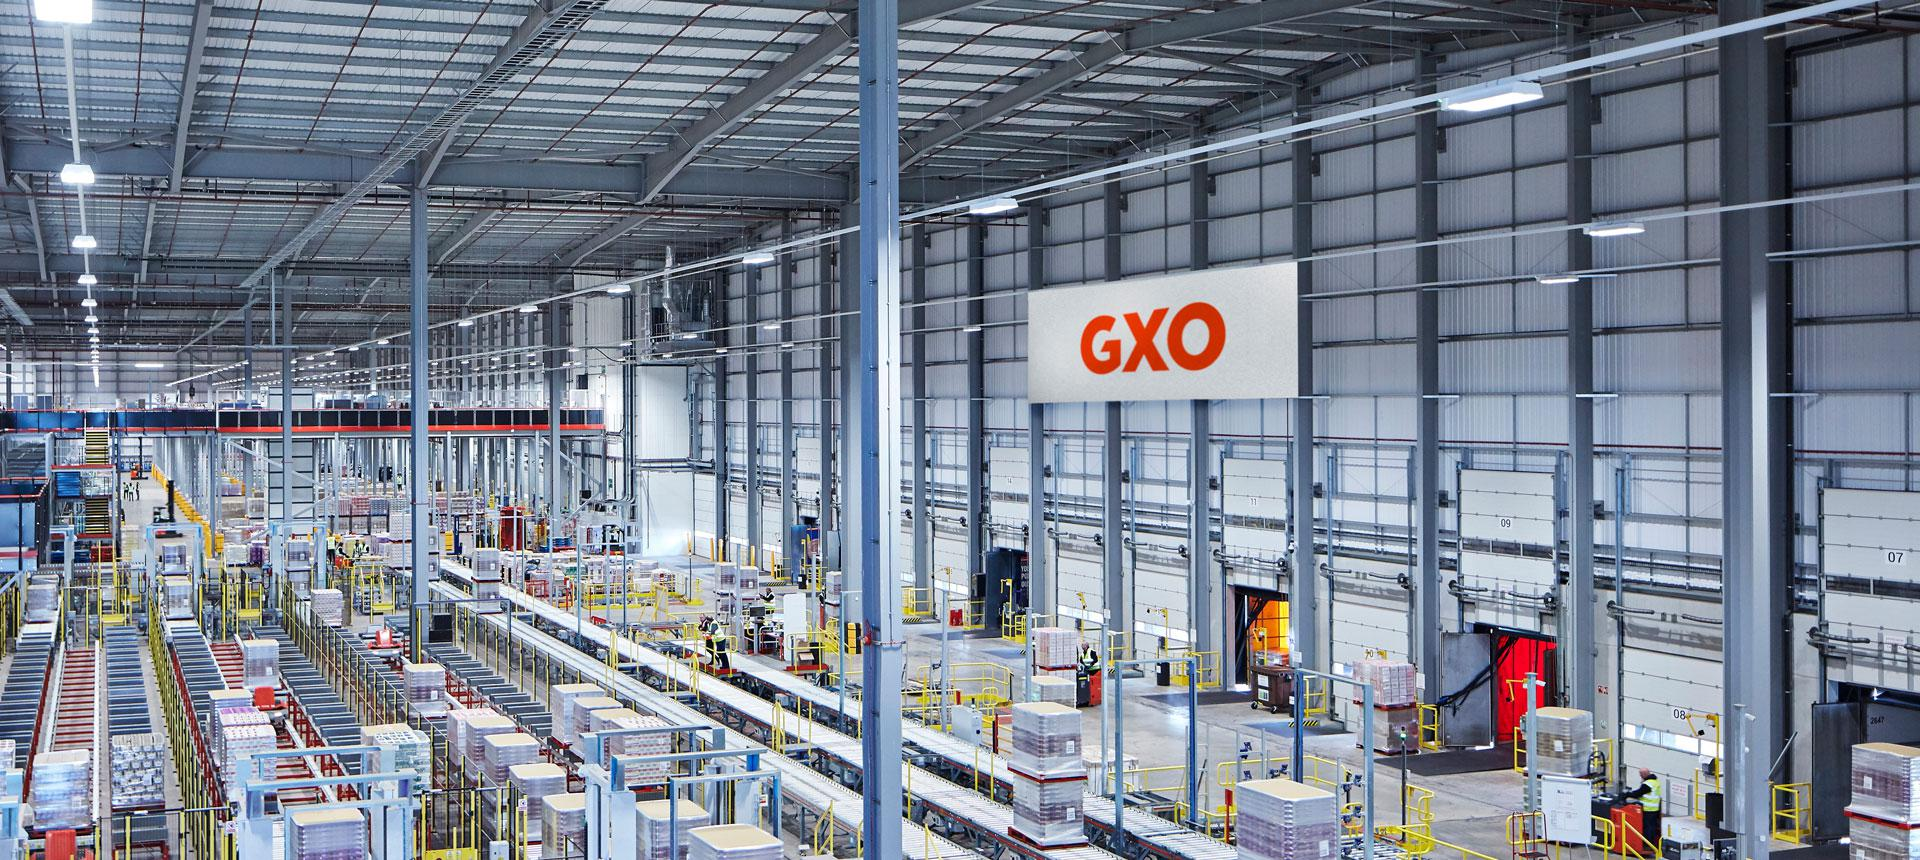 The inside of a GXO warehouse.